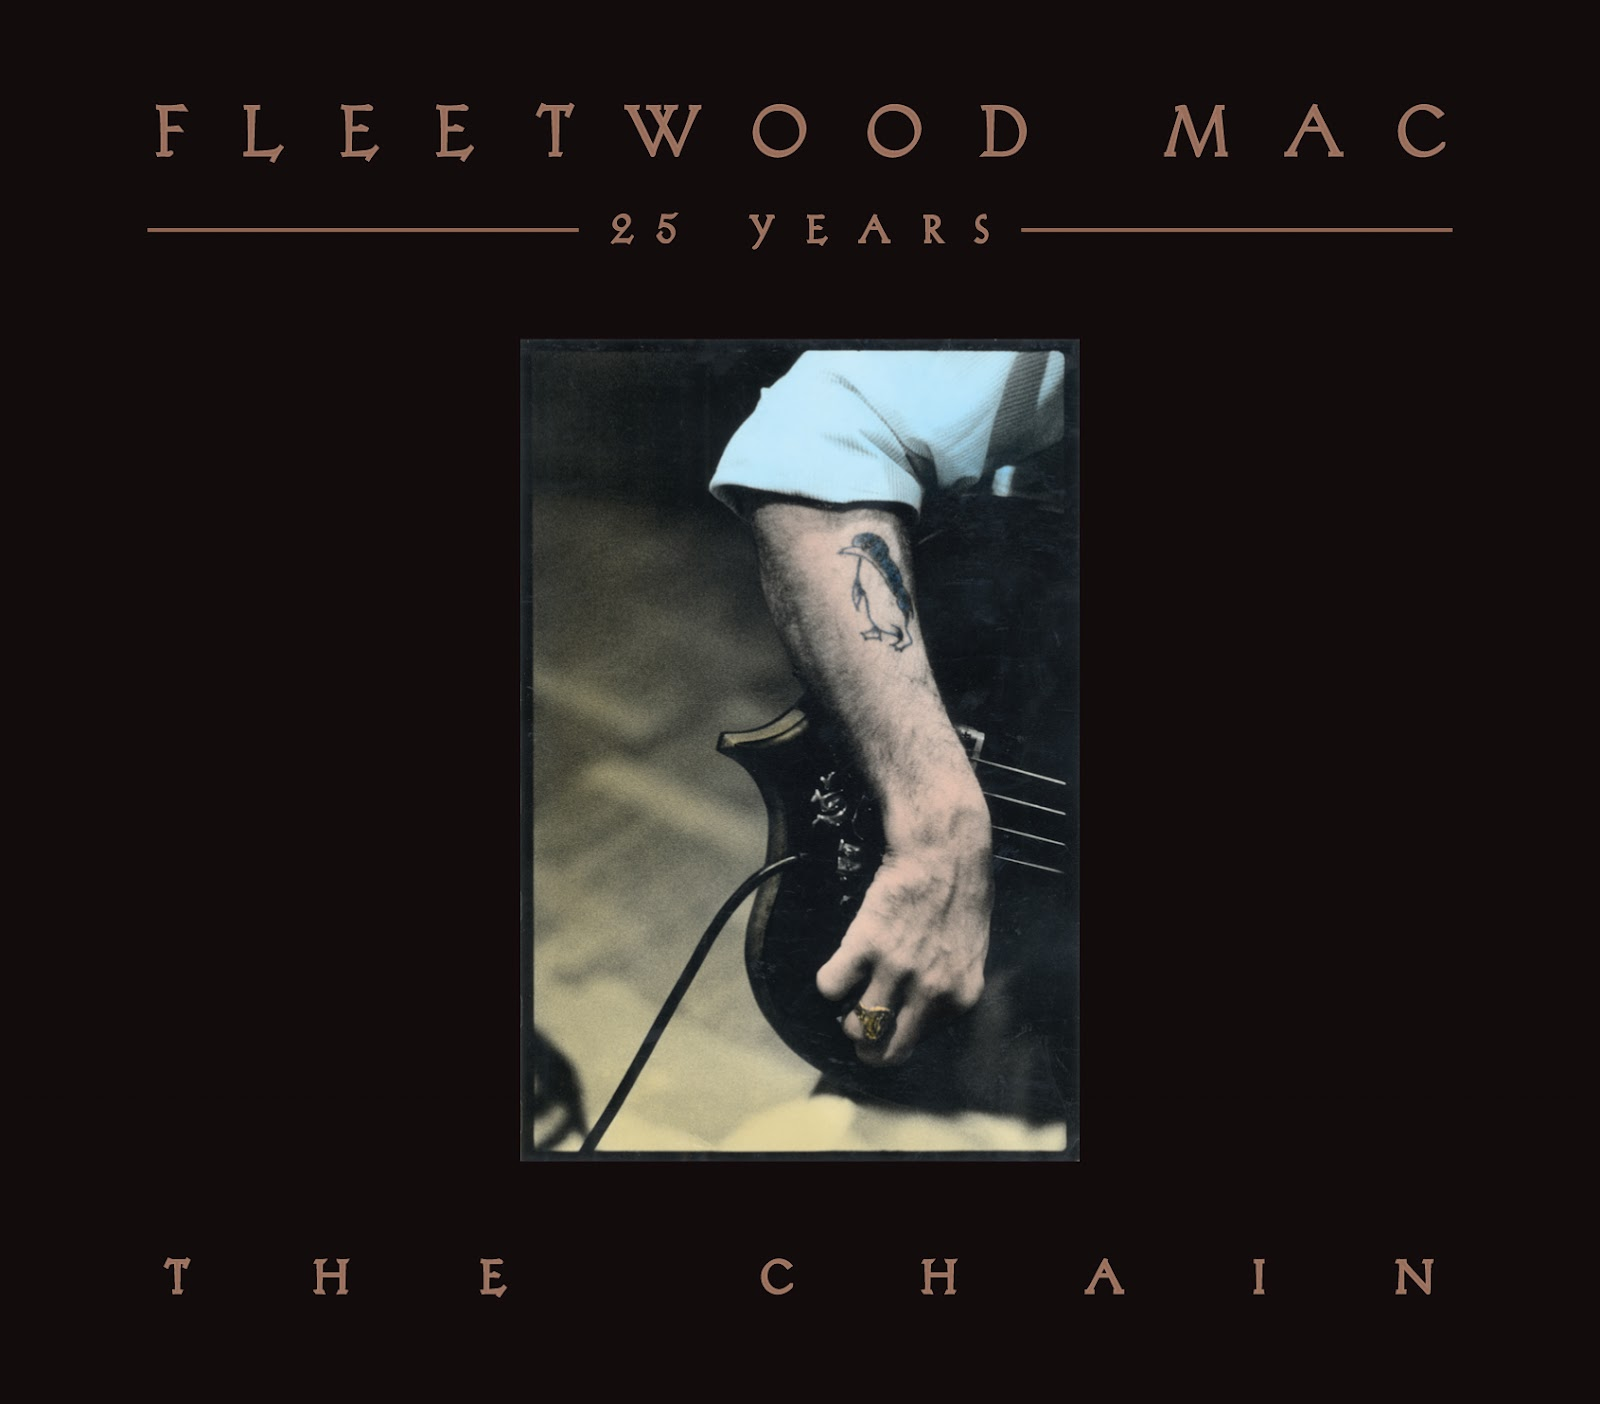 FLEETWOOD-MAC-25-Years-The-Chain-4-CD-NEW-Best-Of-Greatest-Hits-Rarities